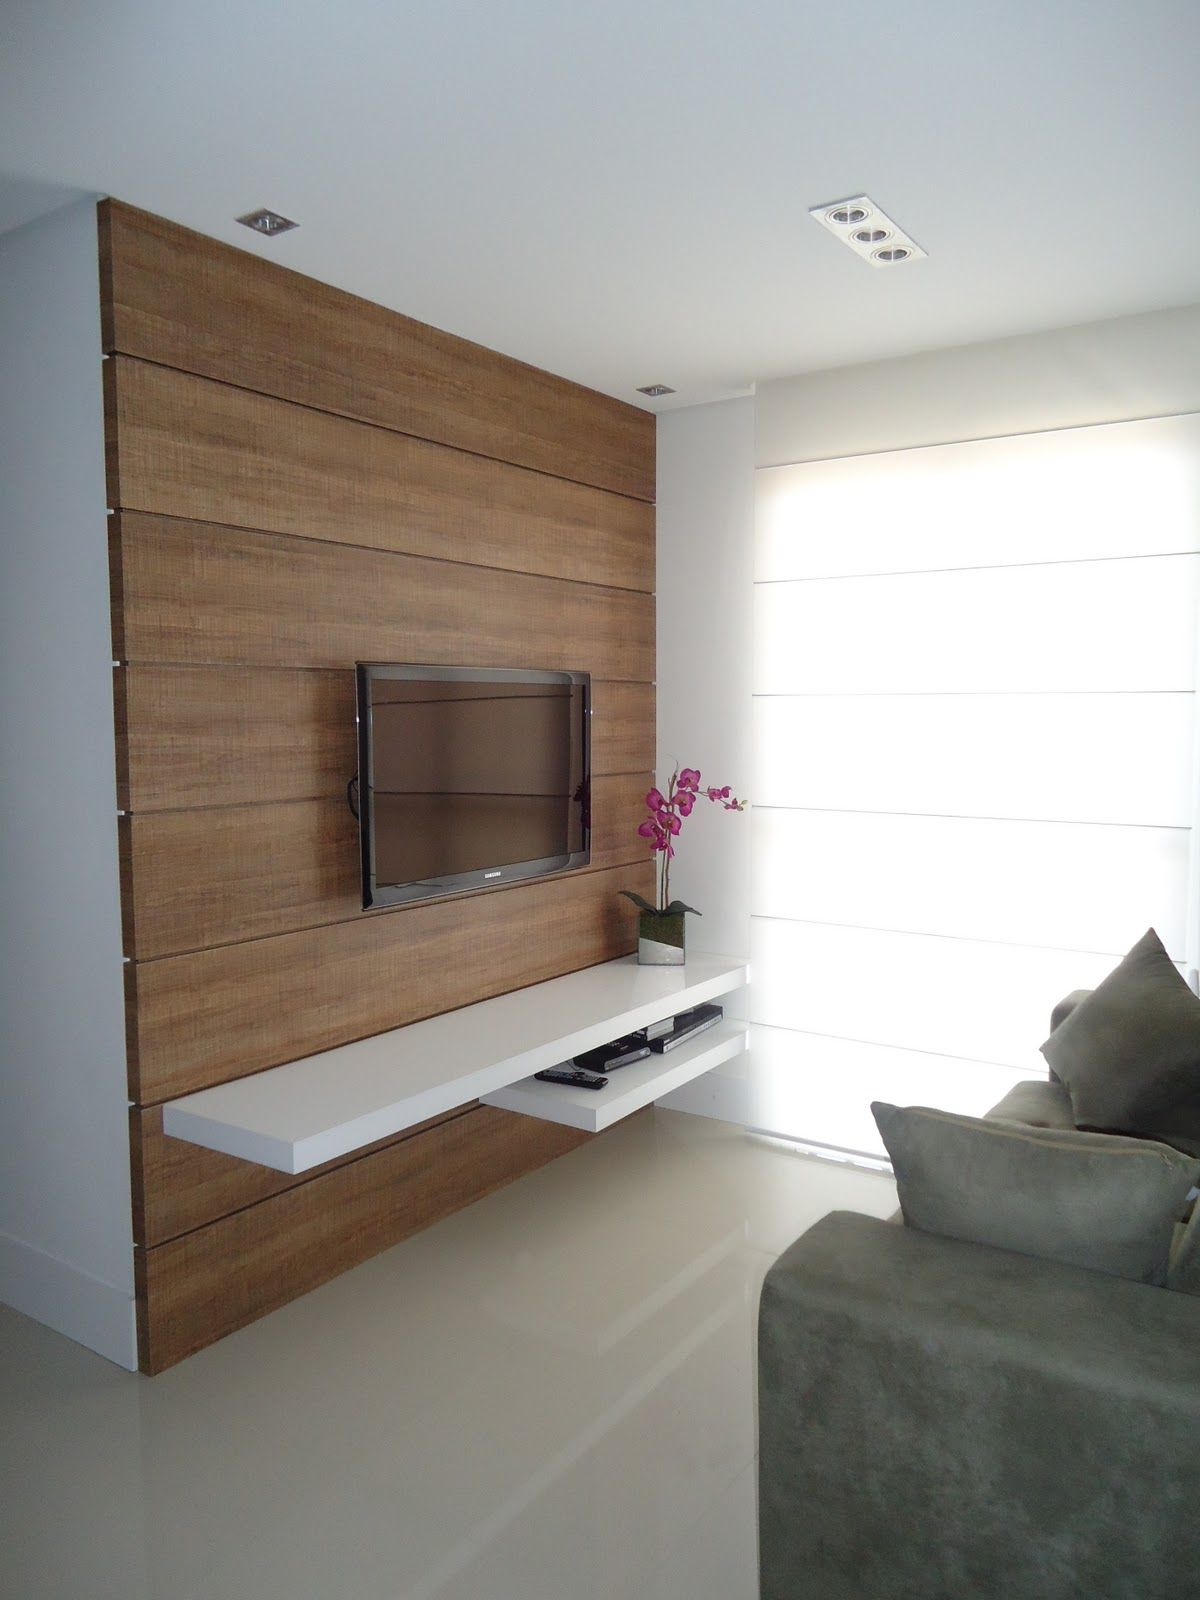 Image Result For Painel De Tv Com Rack Rustico Tv Pinterest  -> Sala De Tv Com Moveis Rusticos